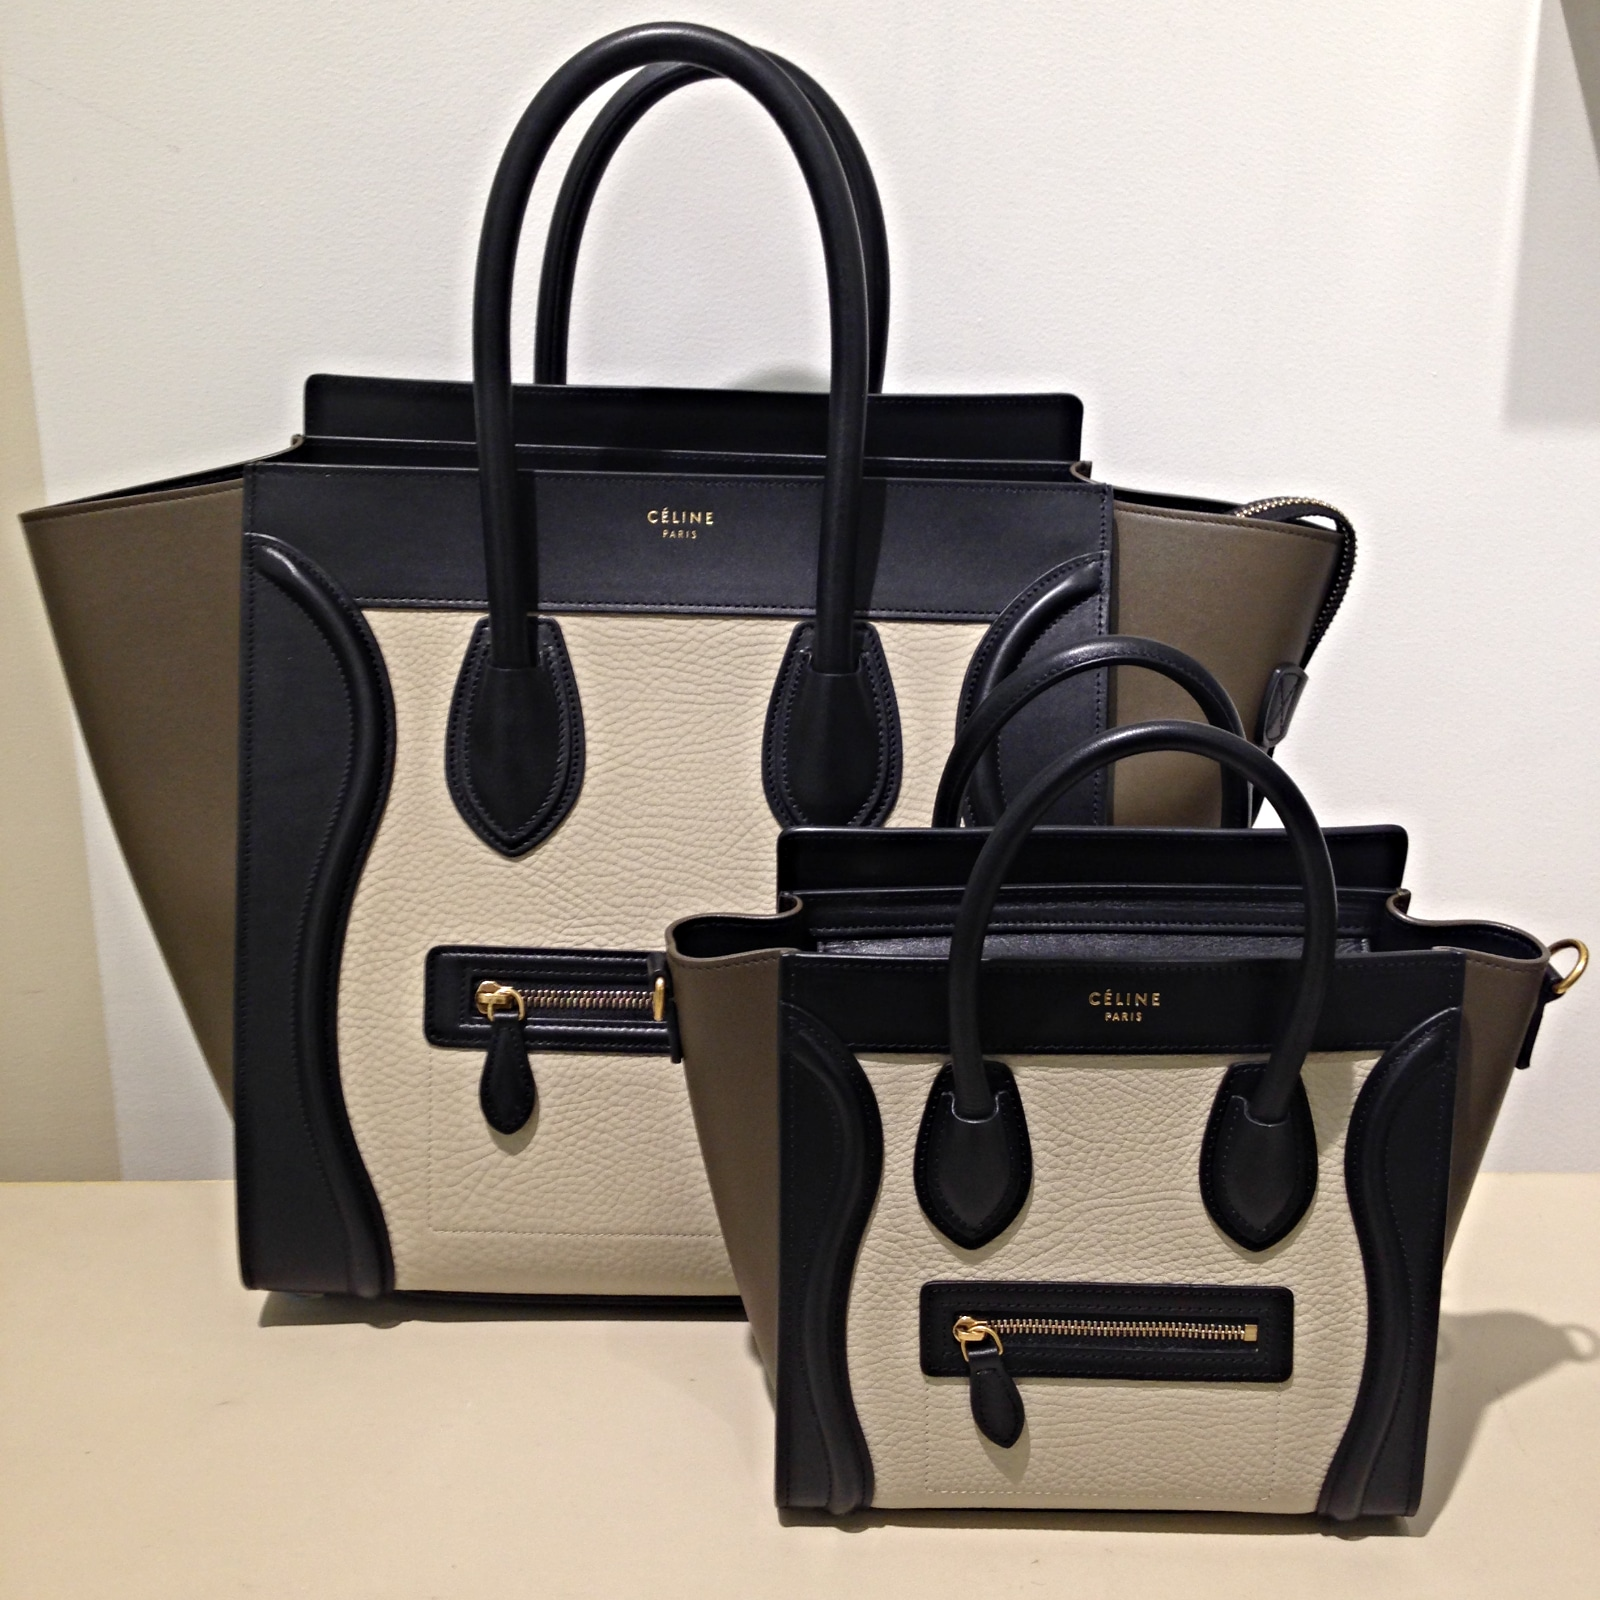 zara shopper bag replica - Celine Nano Luggage Tote Bag Reference Guide | Spotted Fashion